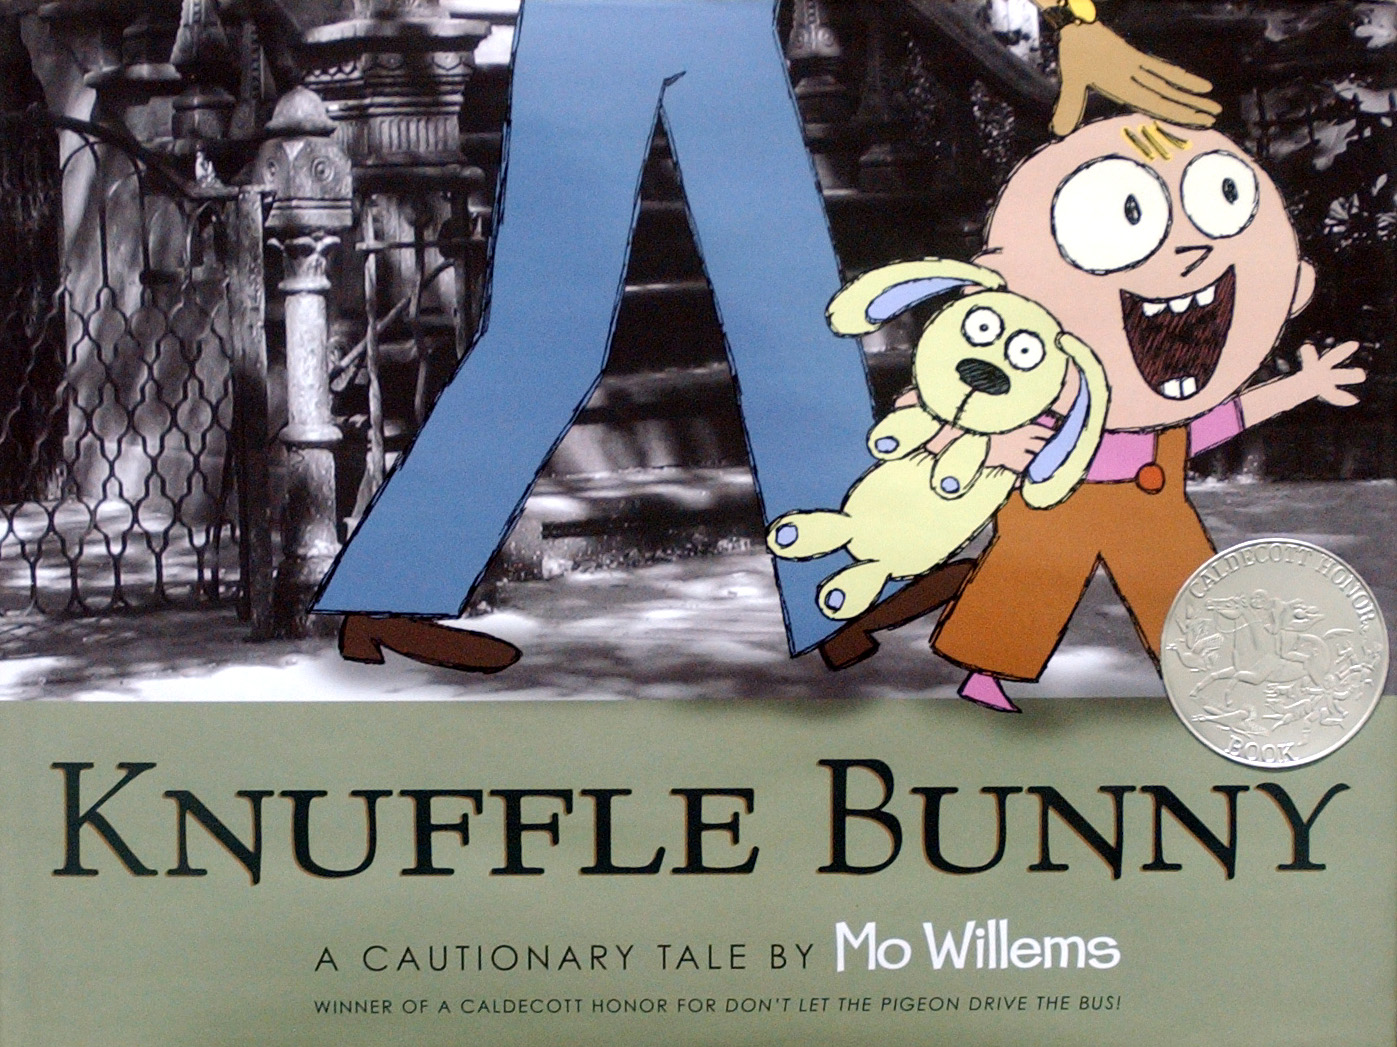 medium resolution of my daughter adores mo willems books knuffle bunny and knuffle bunny too she speaks of trixie and her family as her friends and she knows the stories